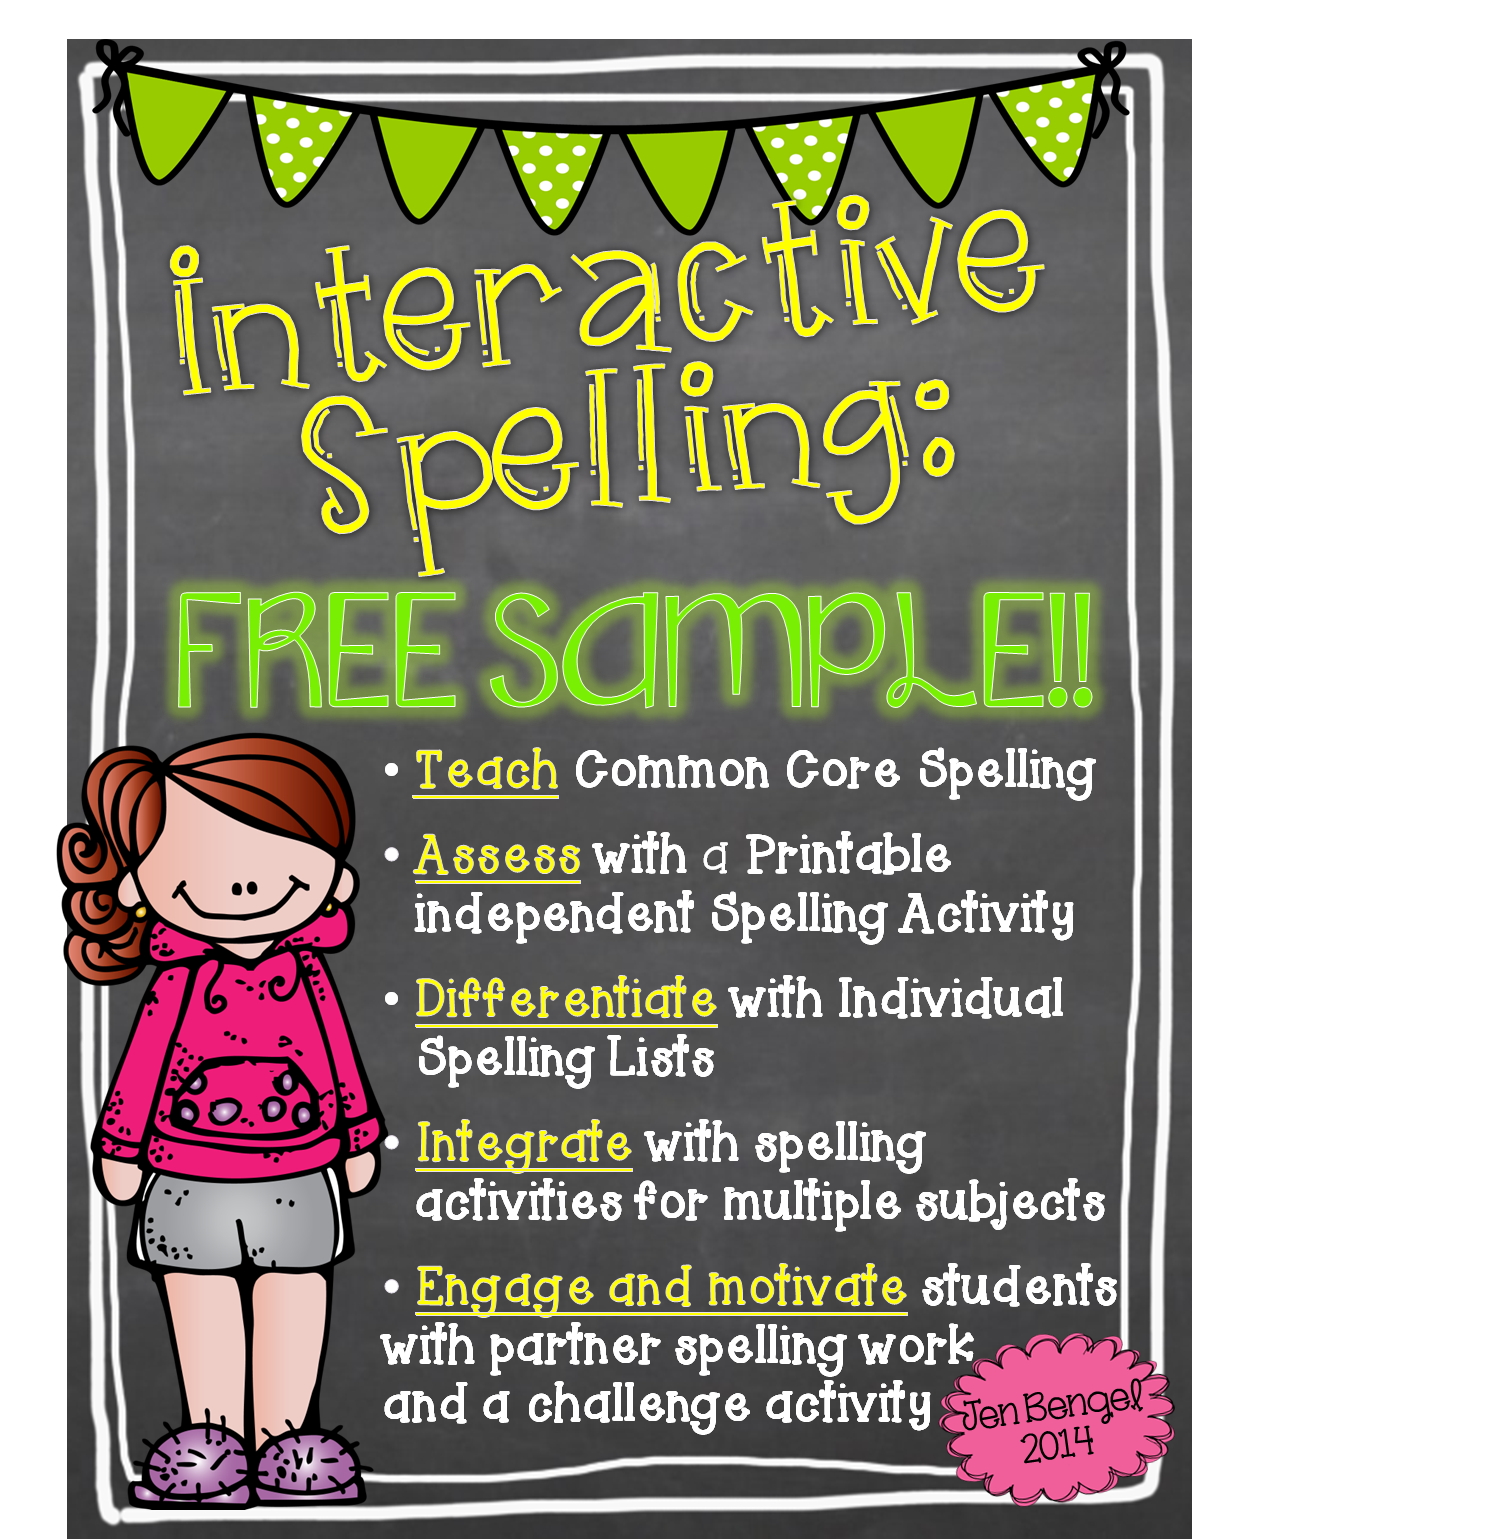 http://www.teacherspayteachers.com/Product/FreebieInteractive-Spelling-With-The-Common-Core-1165048